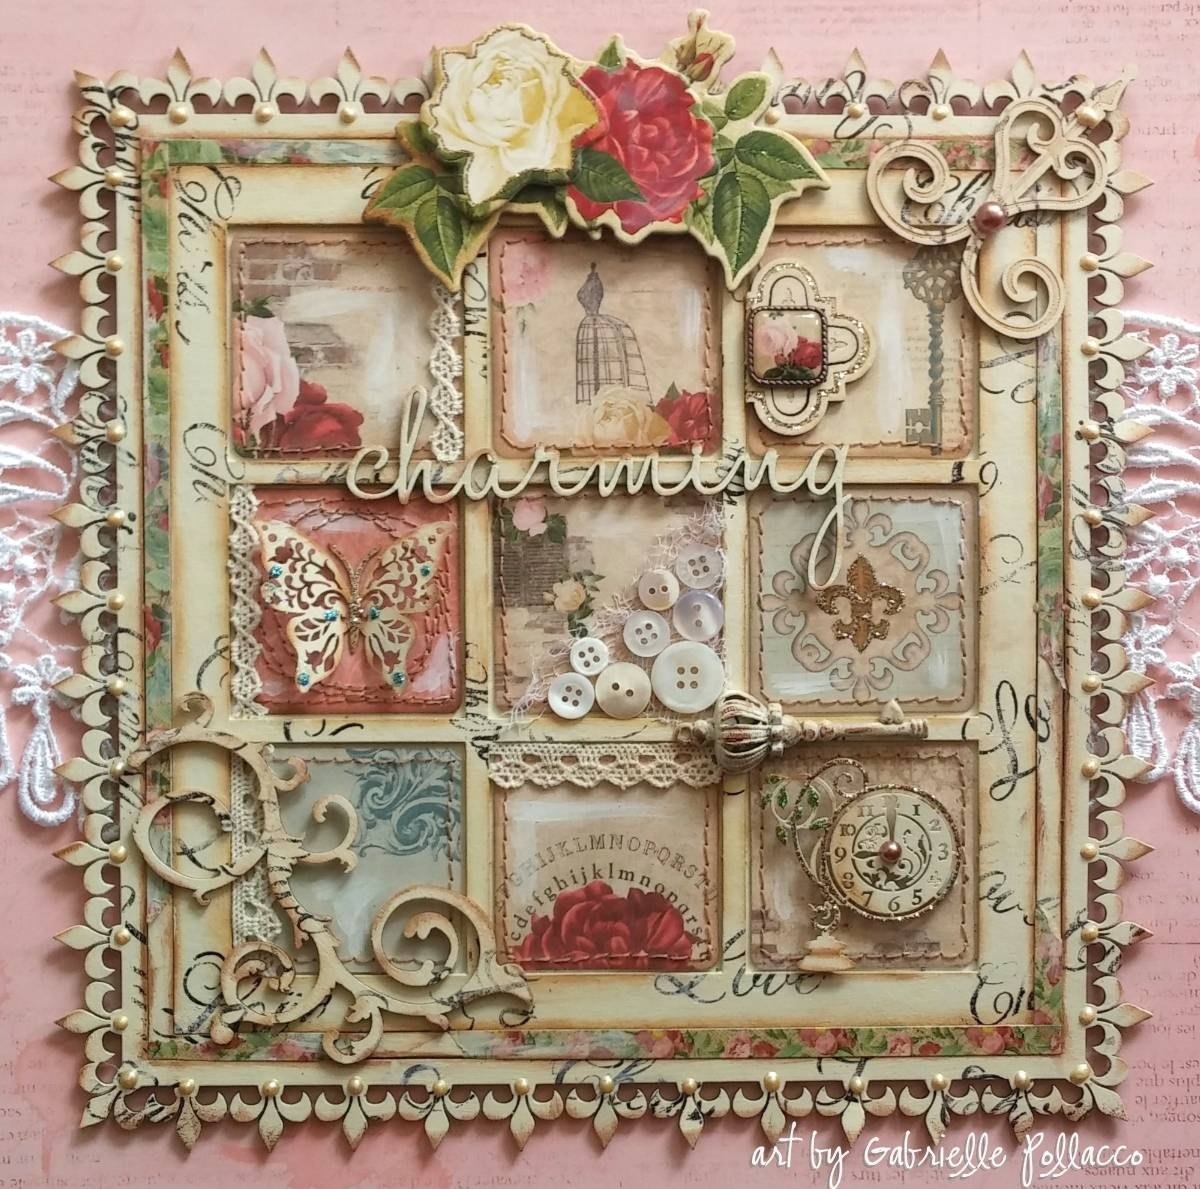 Bobunny: Shabby Chic Juliet Wall Art Throughout Best And Newest Shabby Chic Wall Art (View 2 of 30)